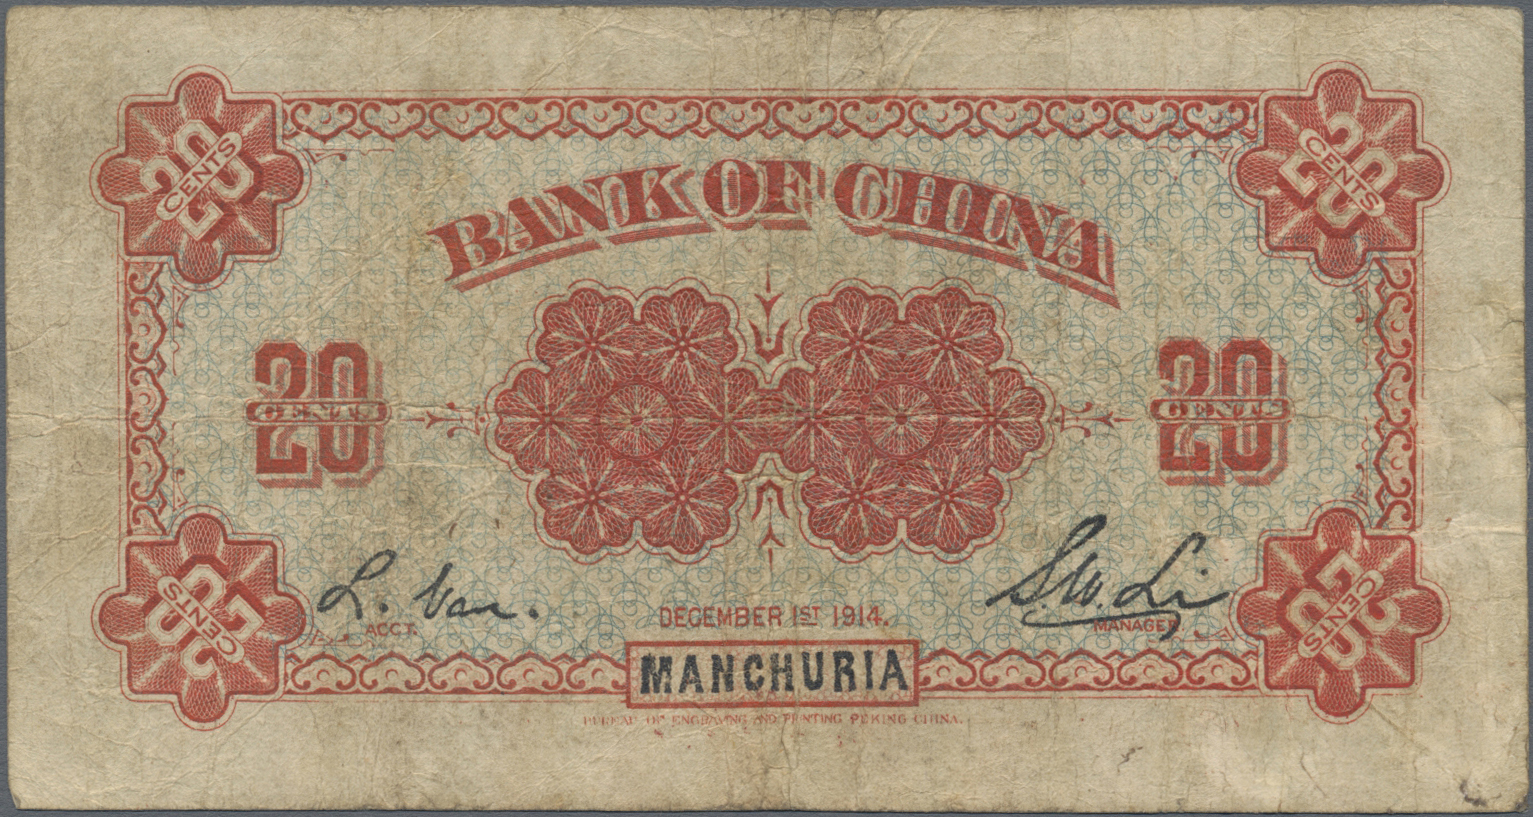 Lot 00122 - China | Banknoten  -  Auktionshaus Christoph Gärtner GmbH & Co. KG Sale #48 The Banknotes